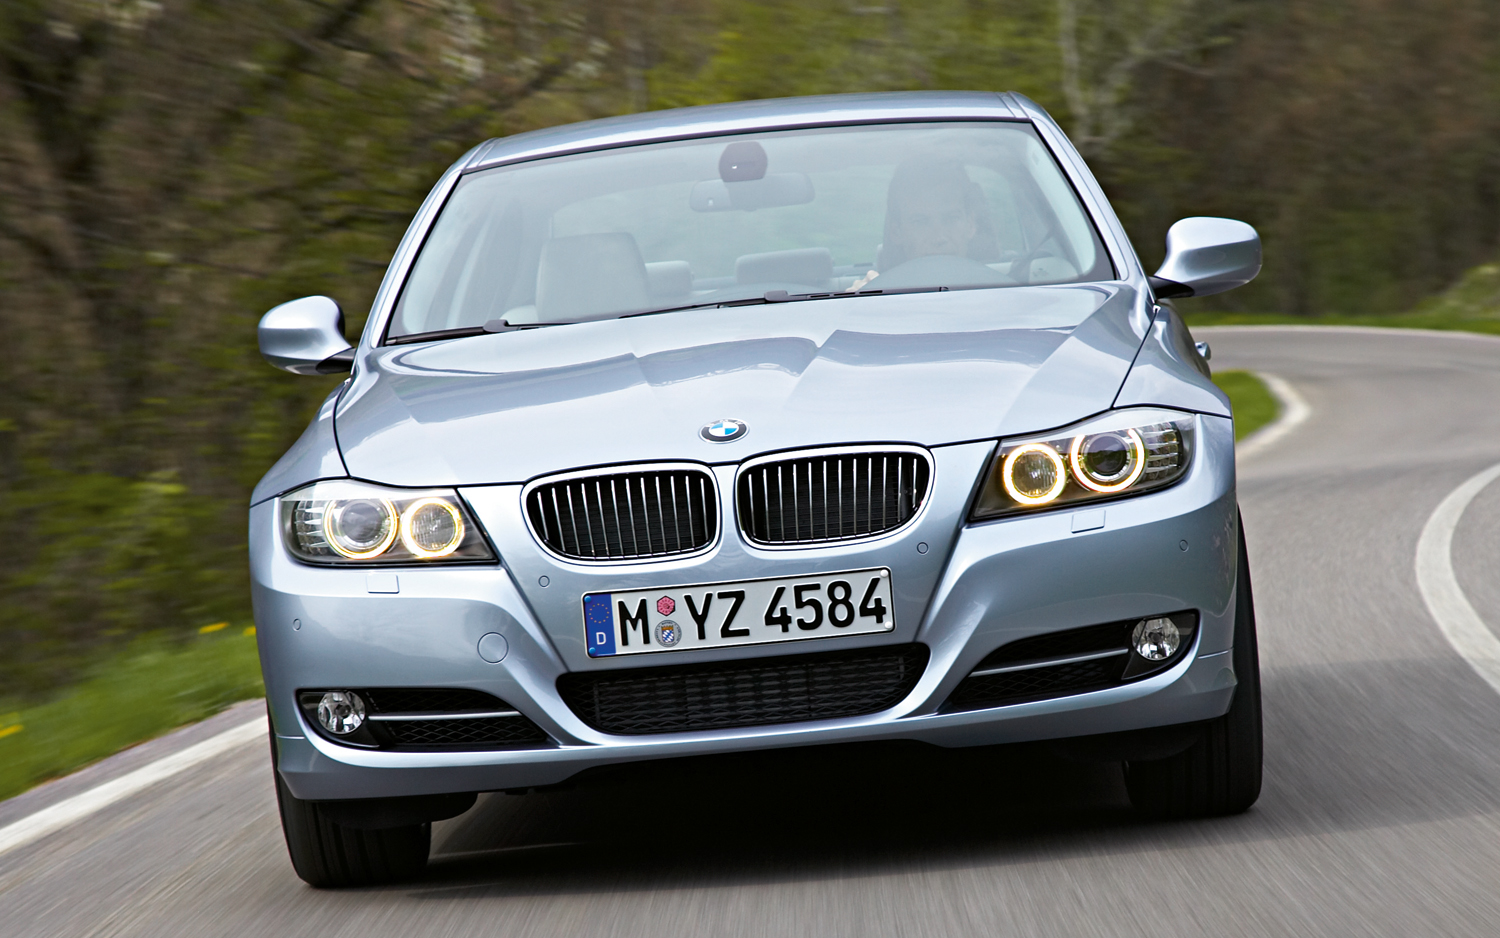 Bmw Ups The Power For 135i And 335i Models With Performance Kits